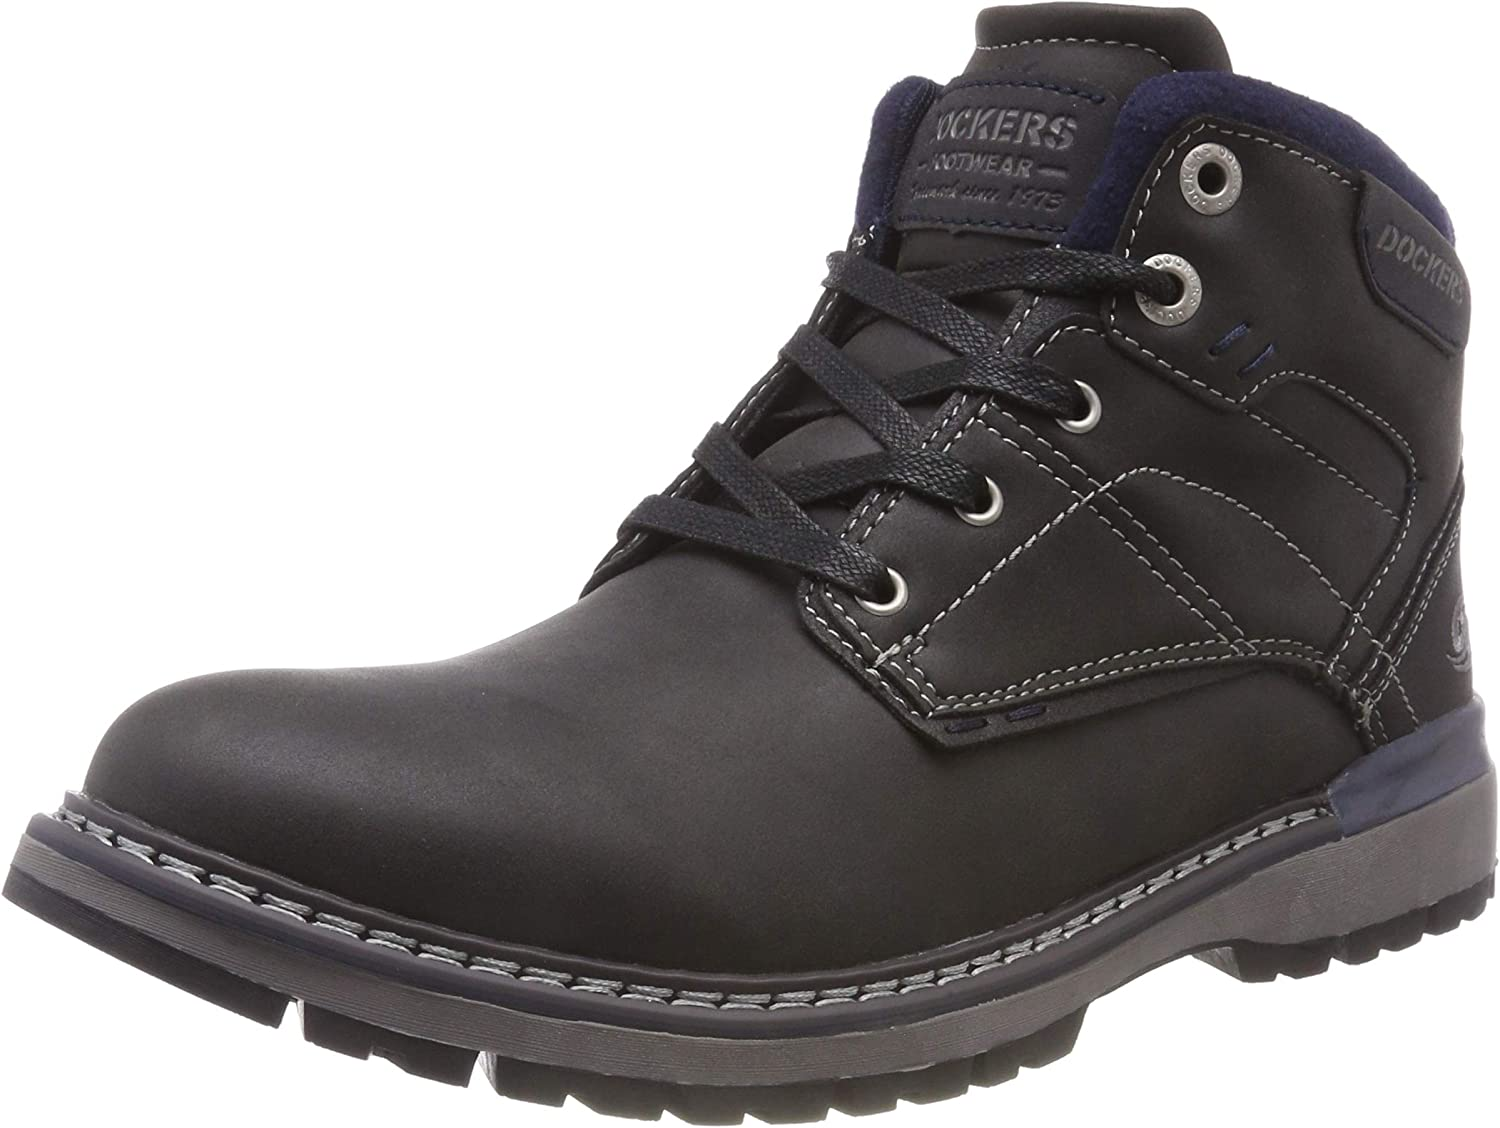 Dockers by Gerli Men's 43ad001 Combat Boots